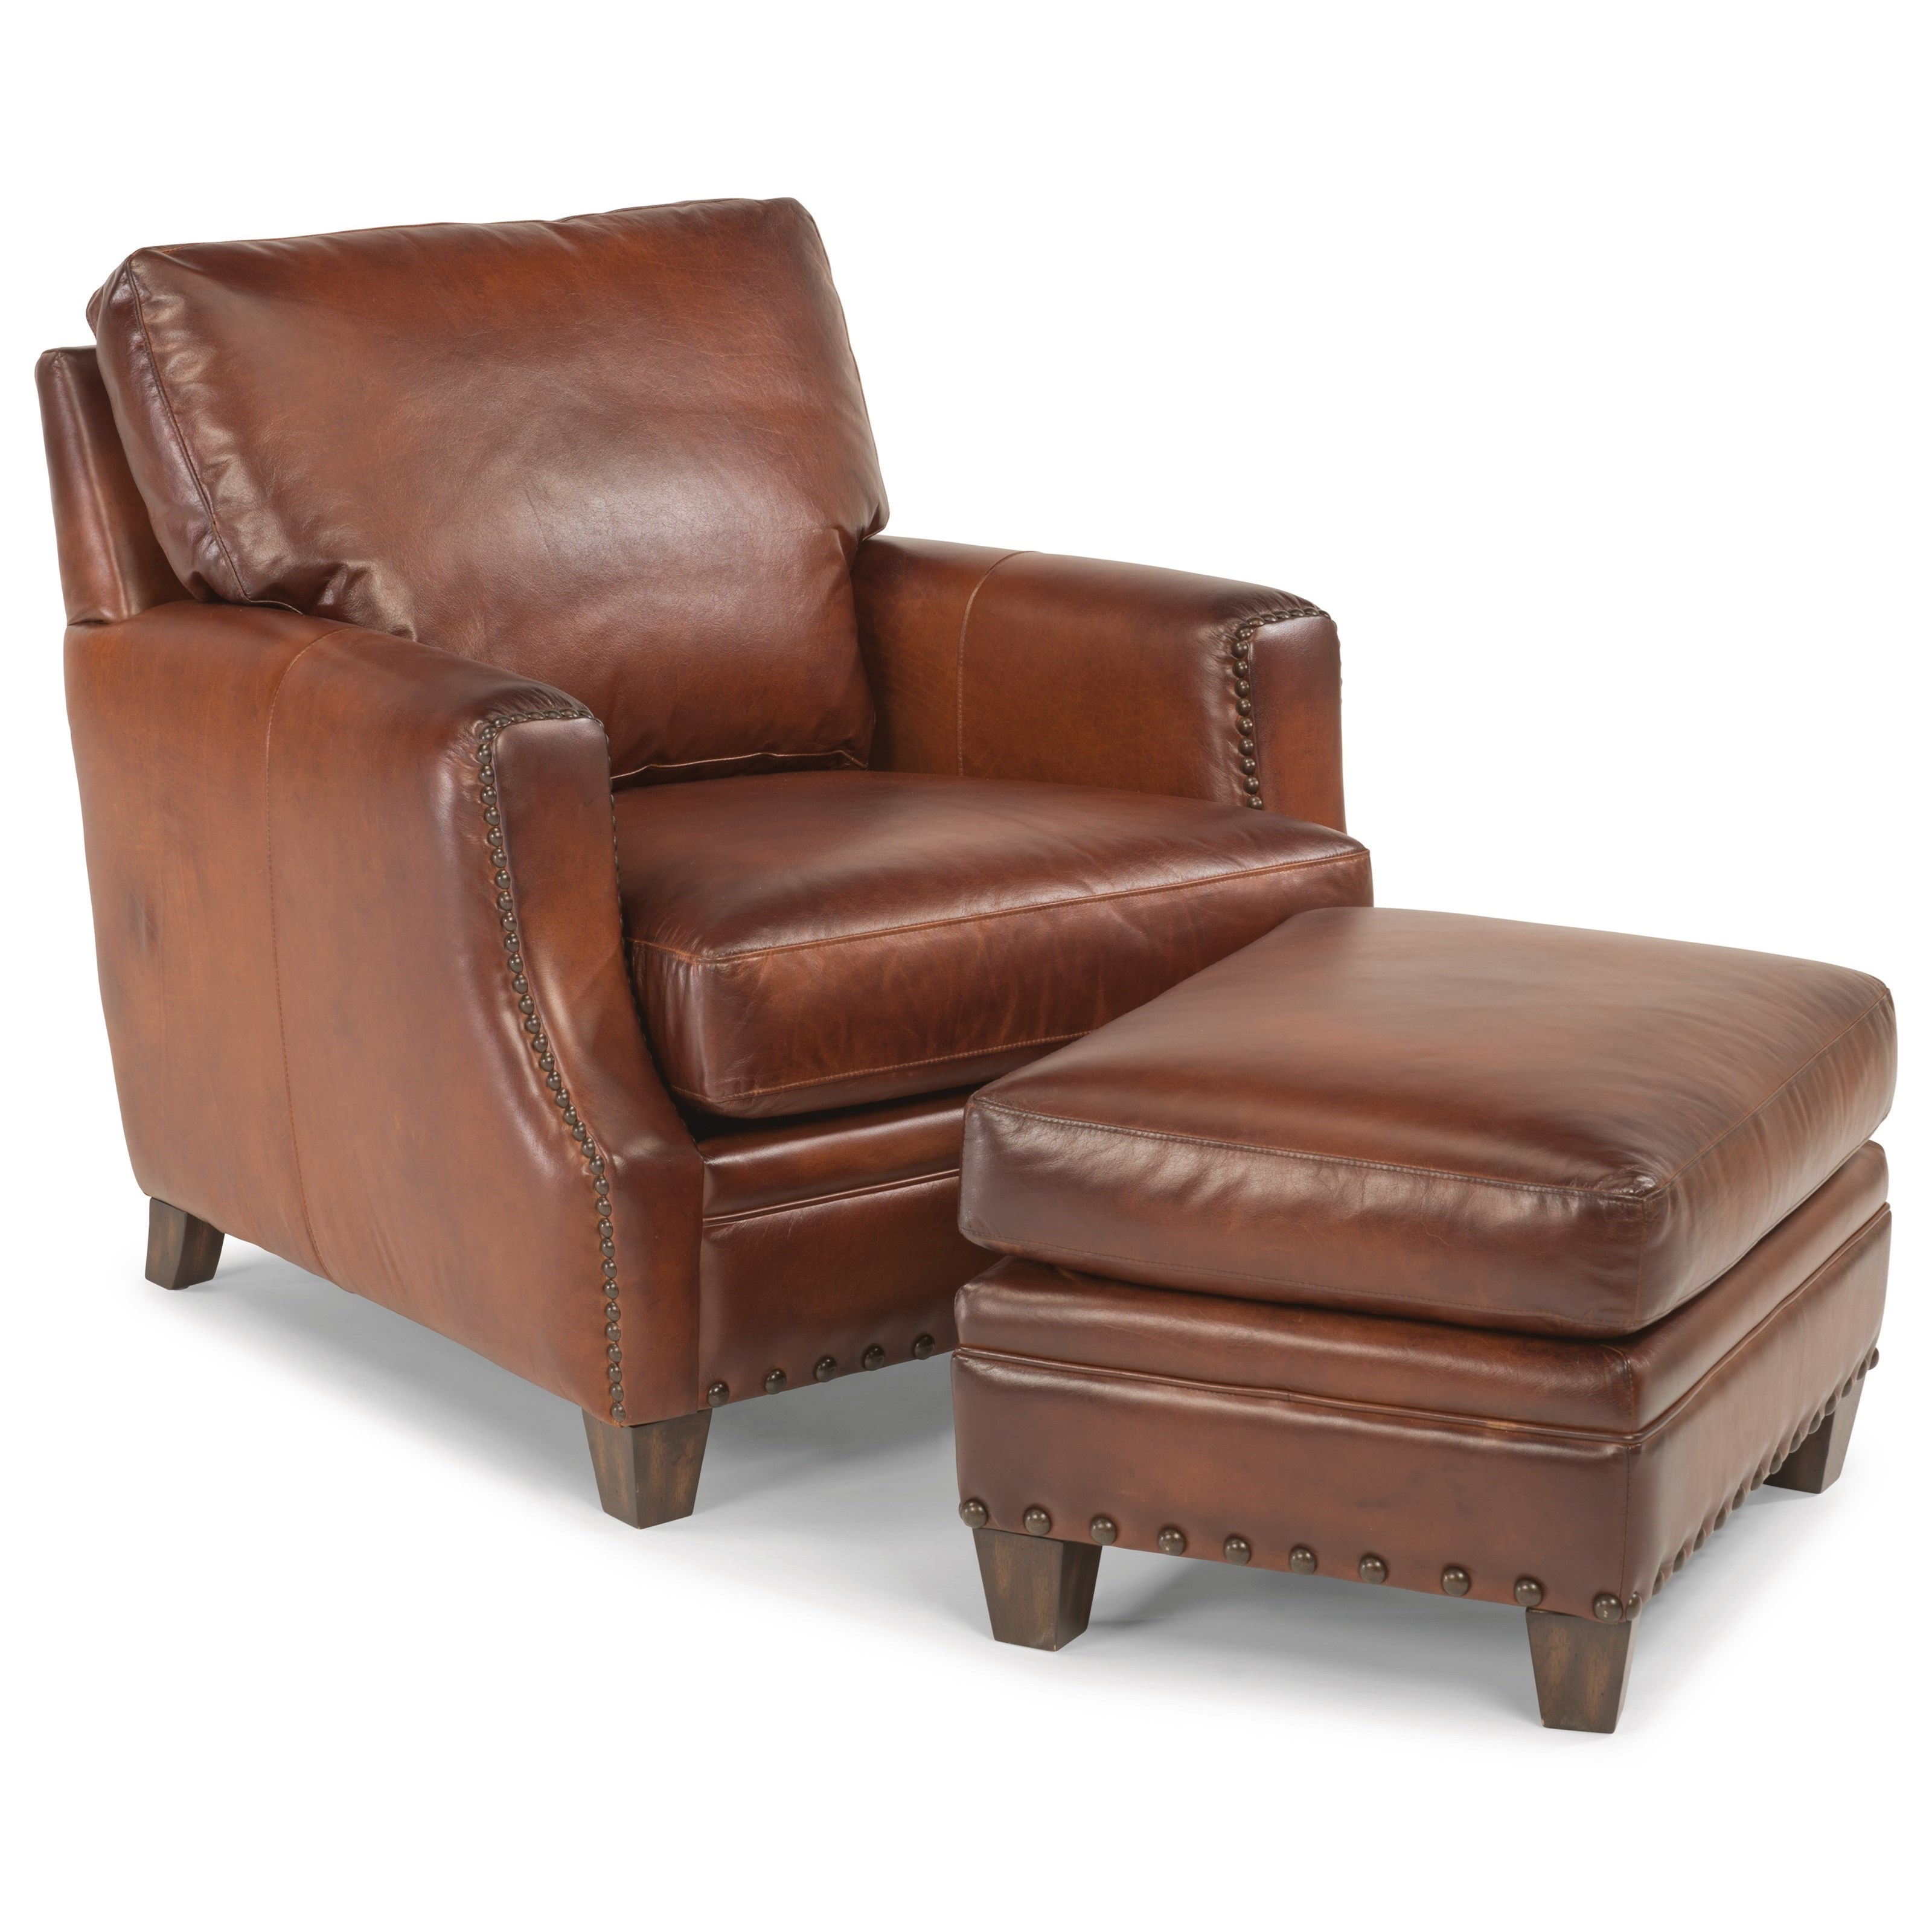 Leather Chair And Ottoman Flexsteel Latitudes Maxfield Rustic Leather Chair And Ottoman